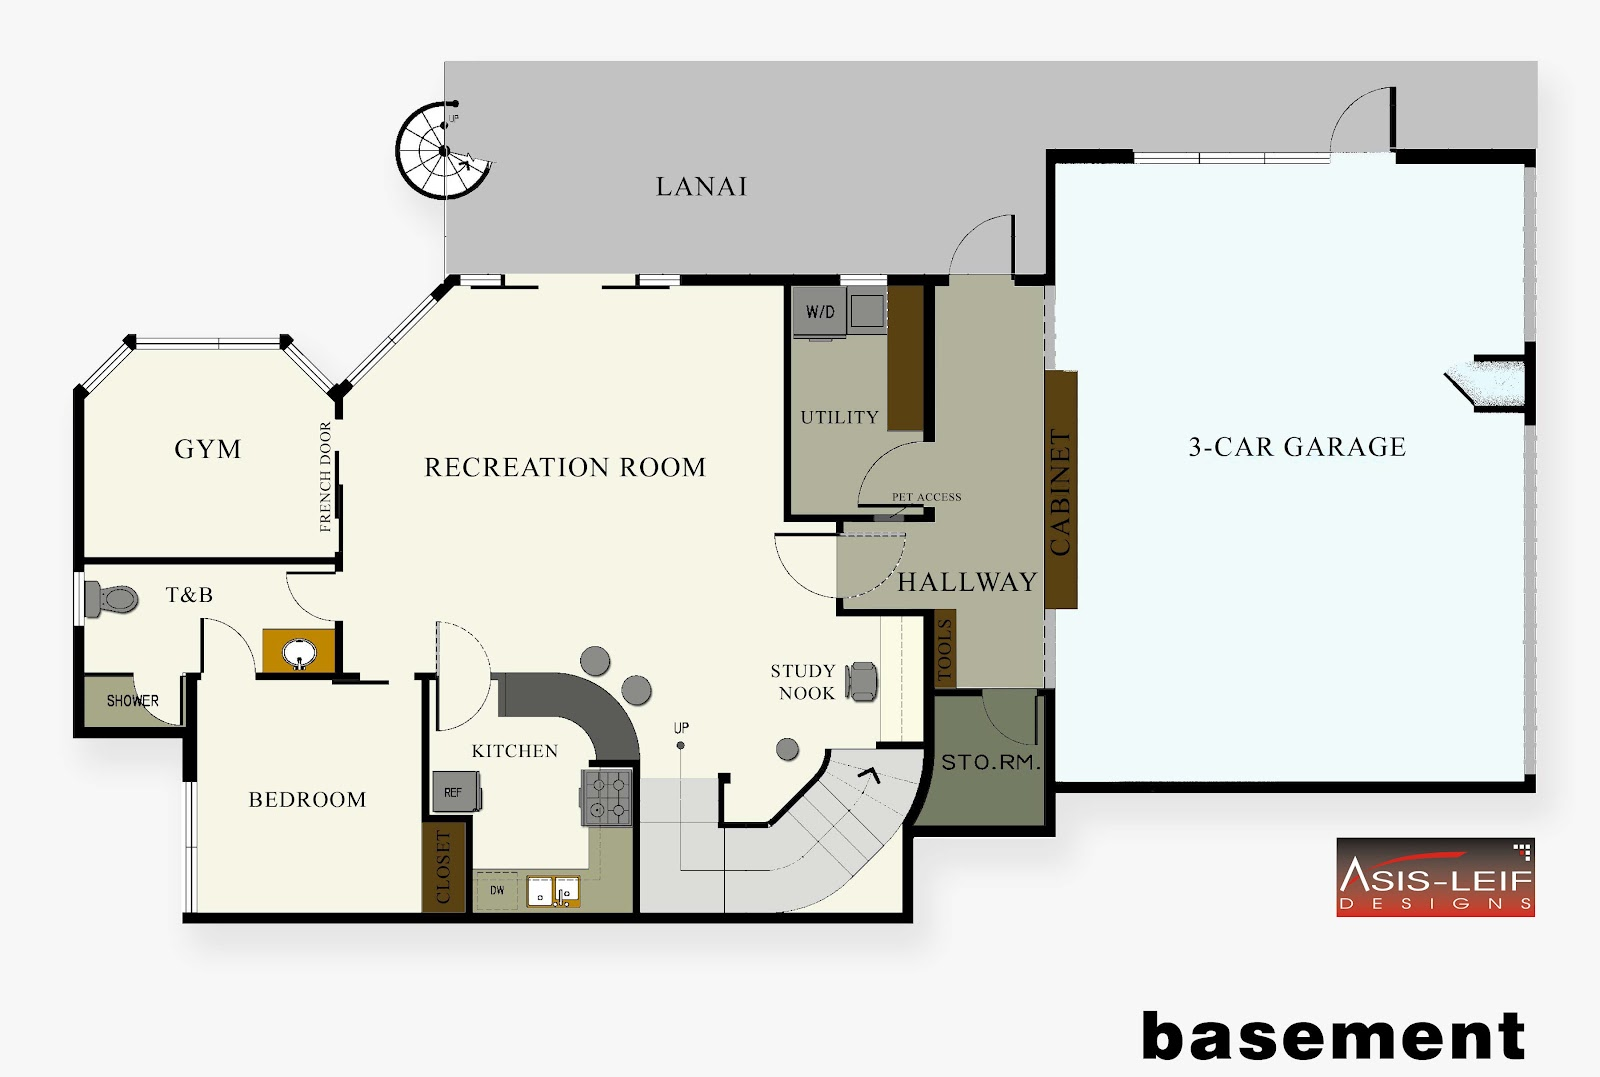 Basement floor plans ideas house plans 1849 for Modern home plans with basement